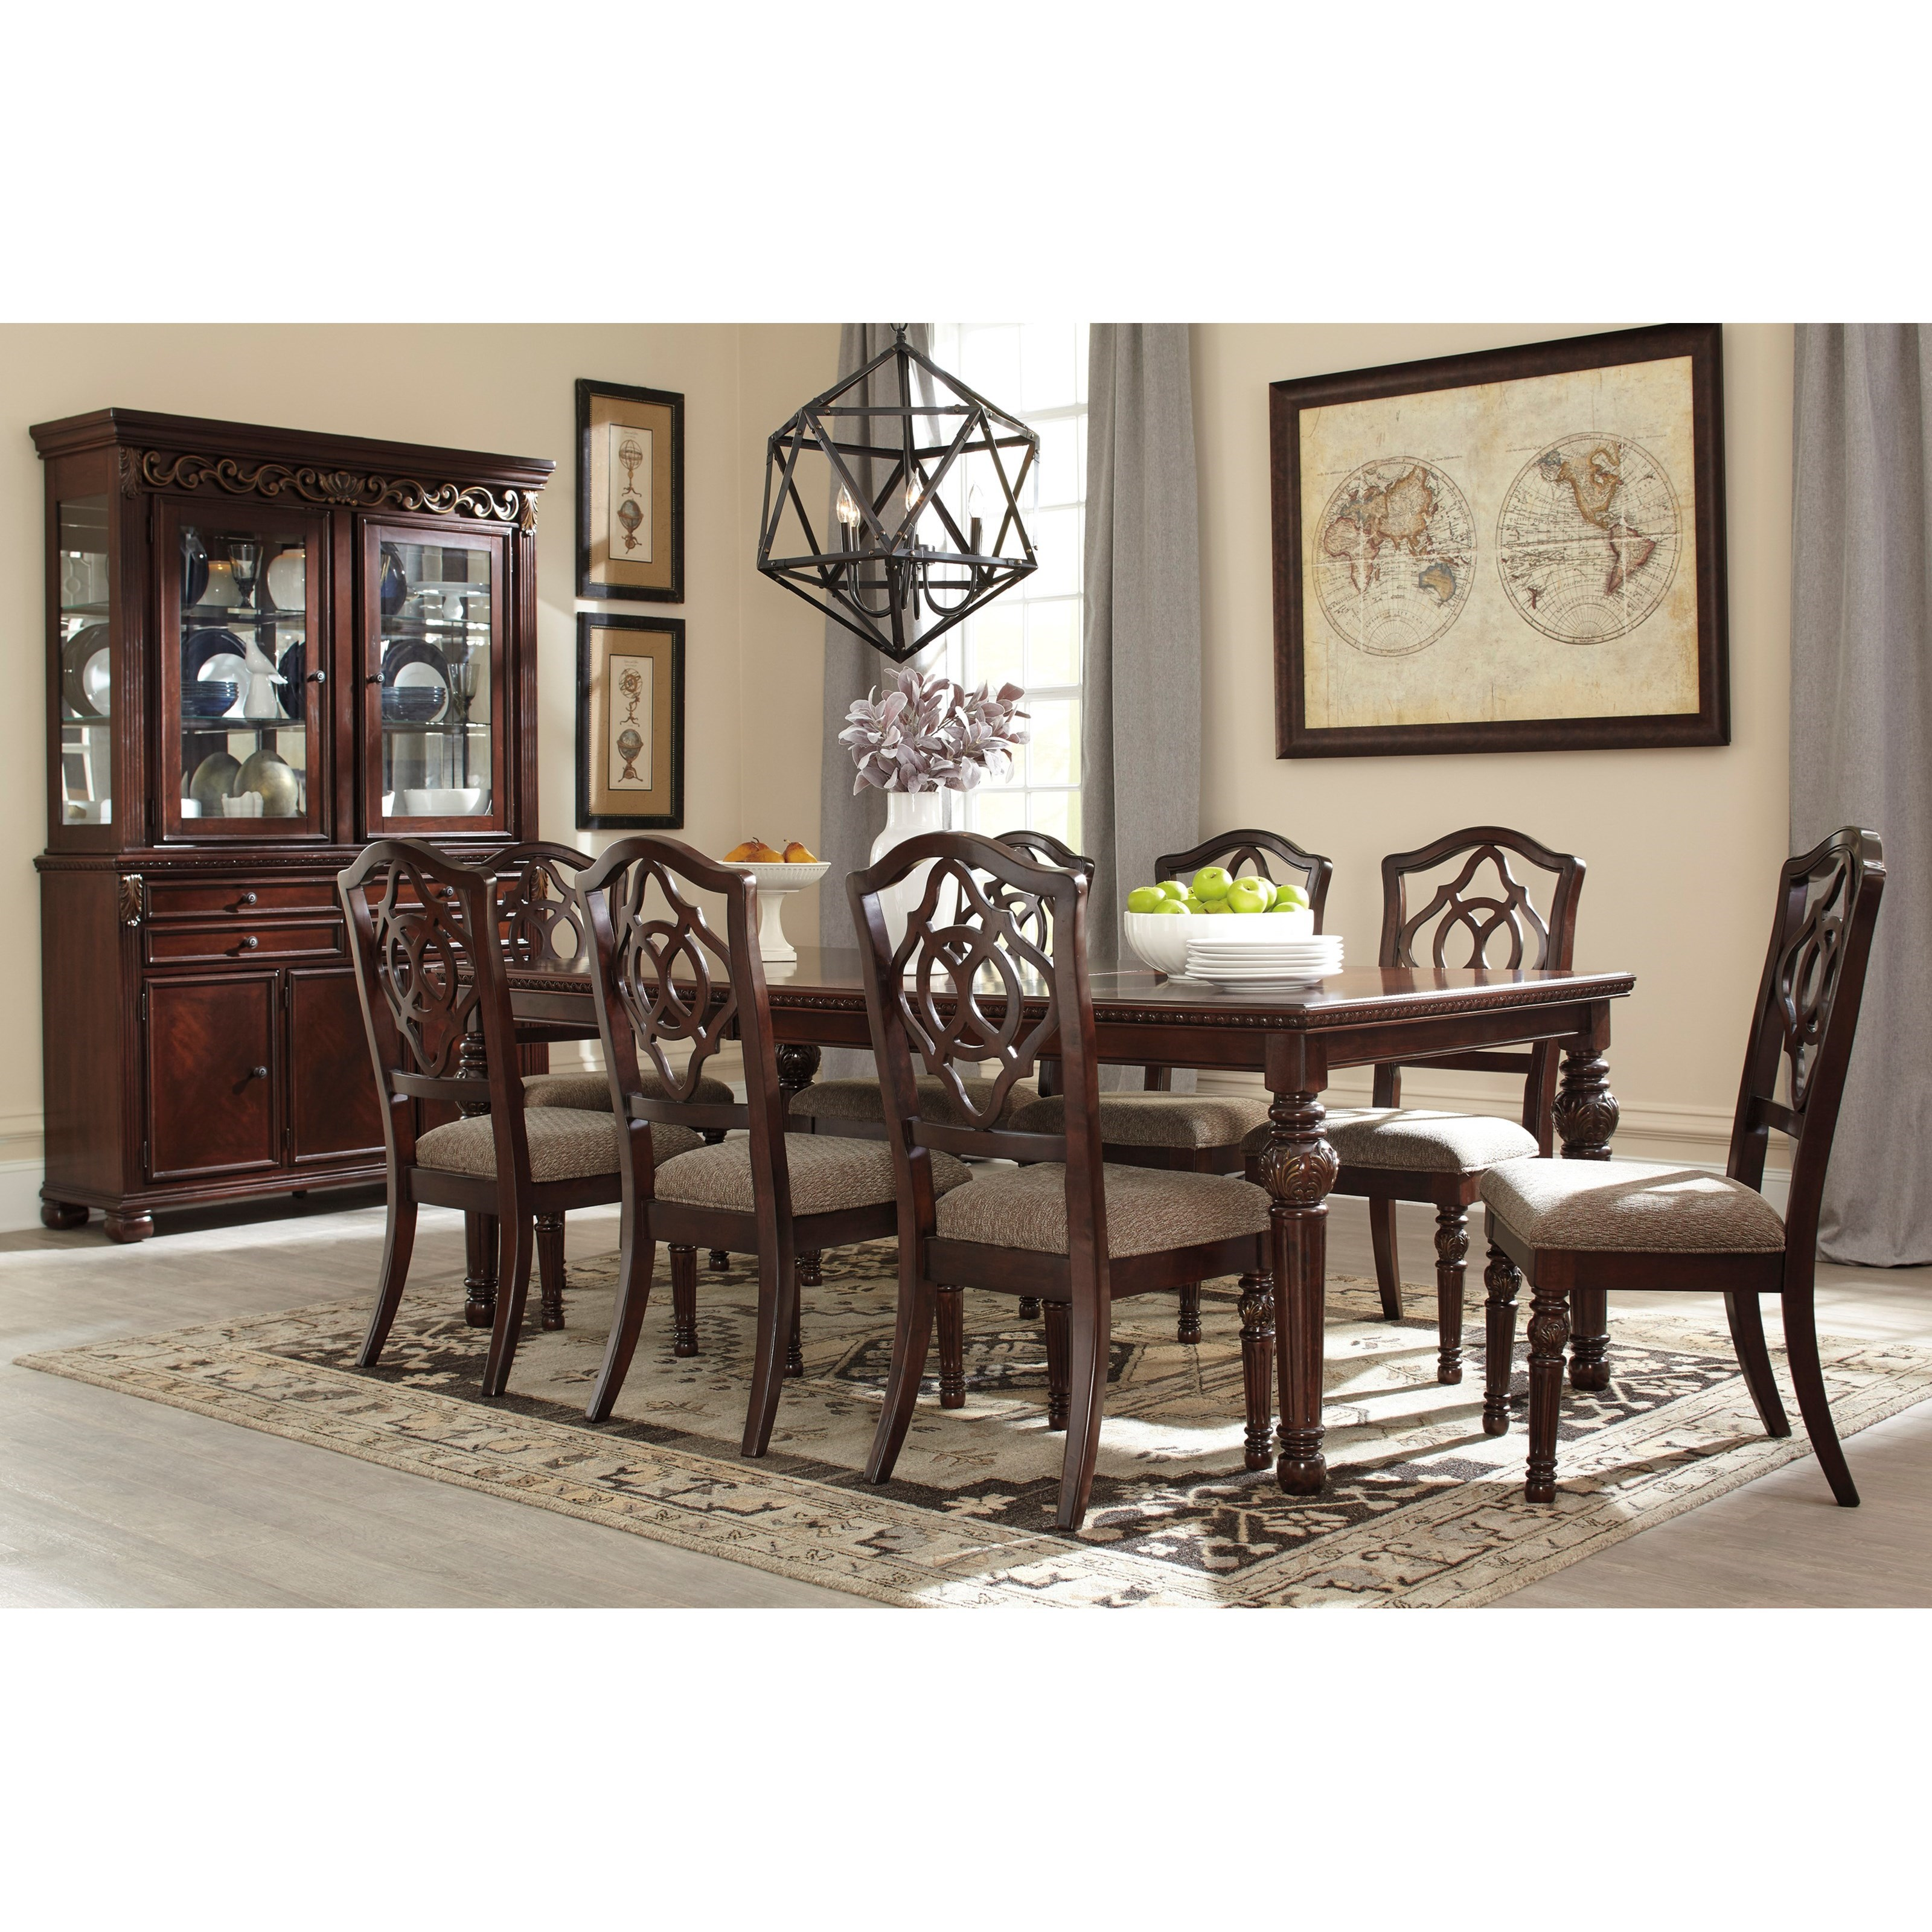 Signature Design by Ashley Leahlyn Casual Dining Room Group | Royal ...